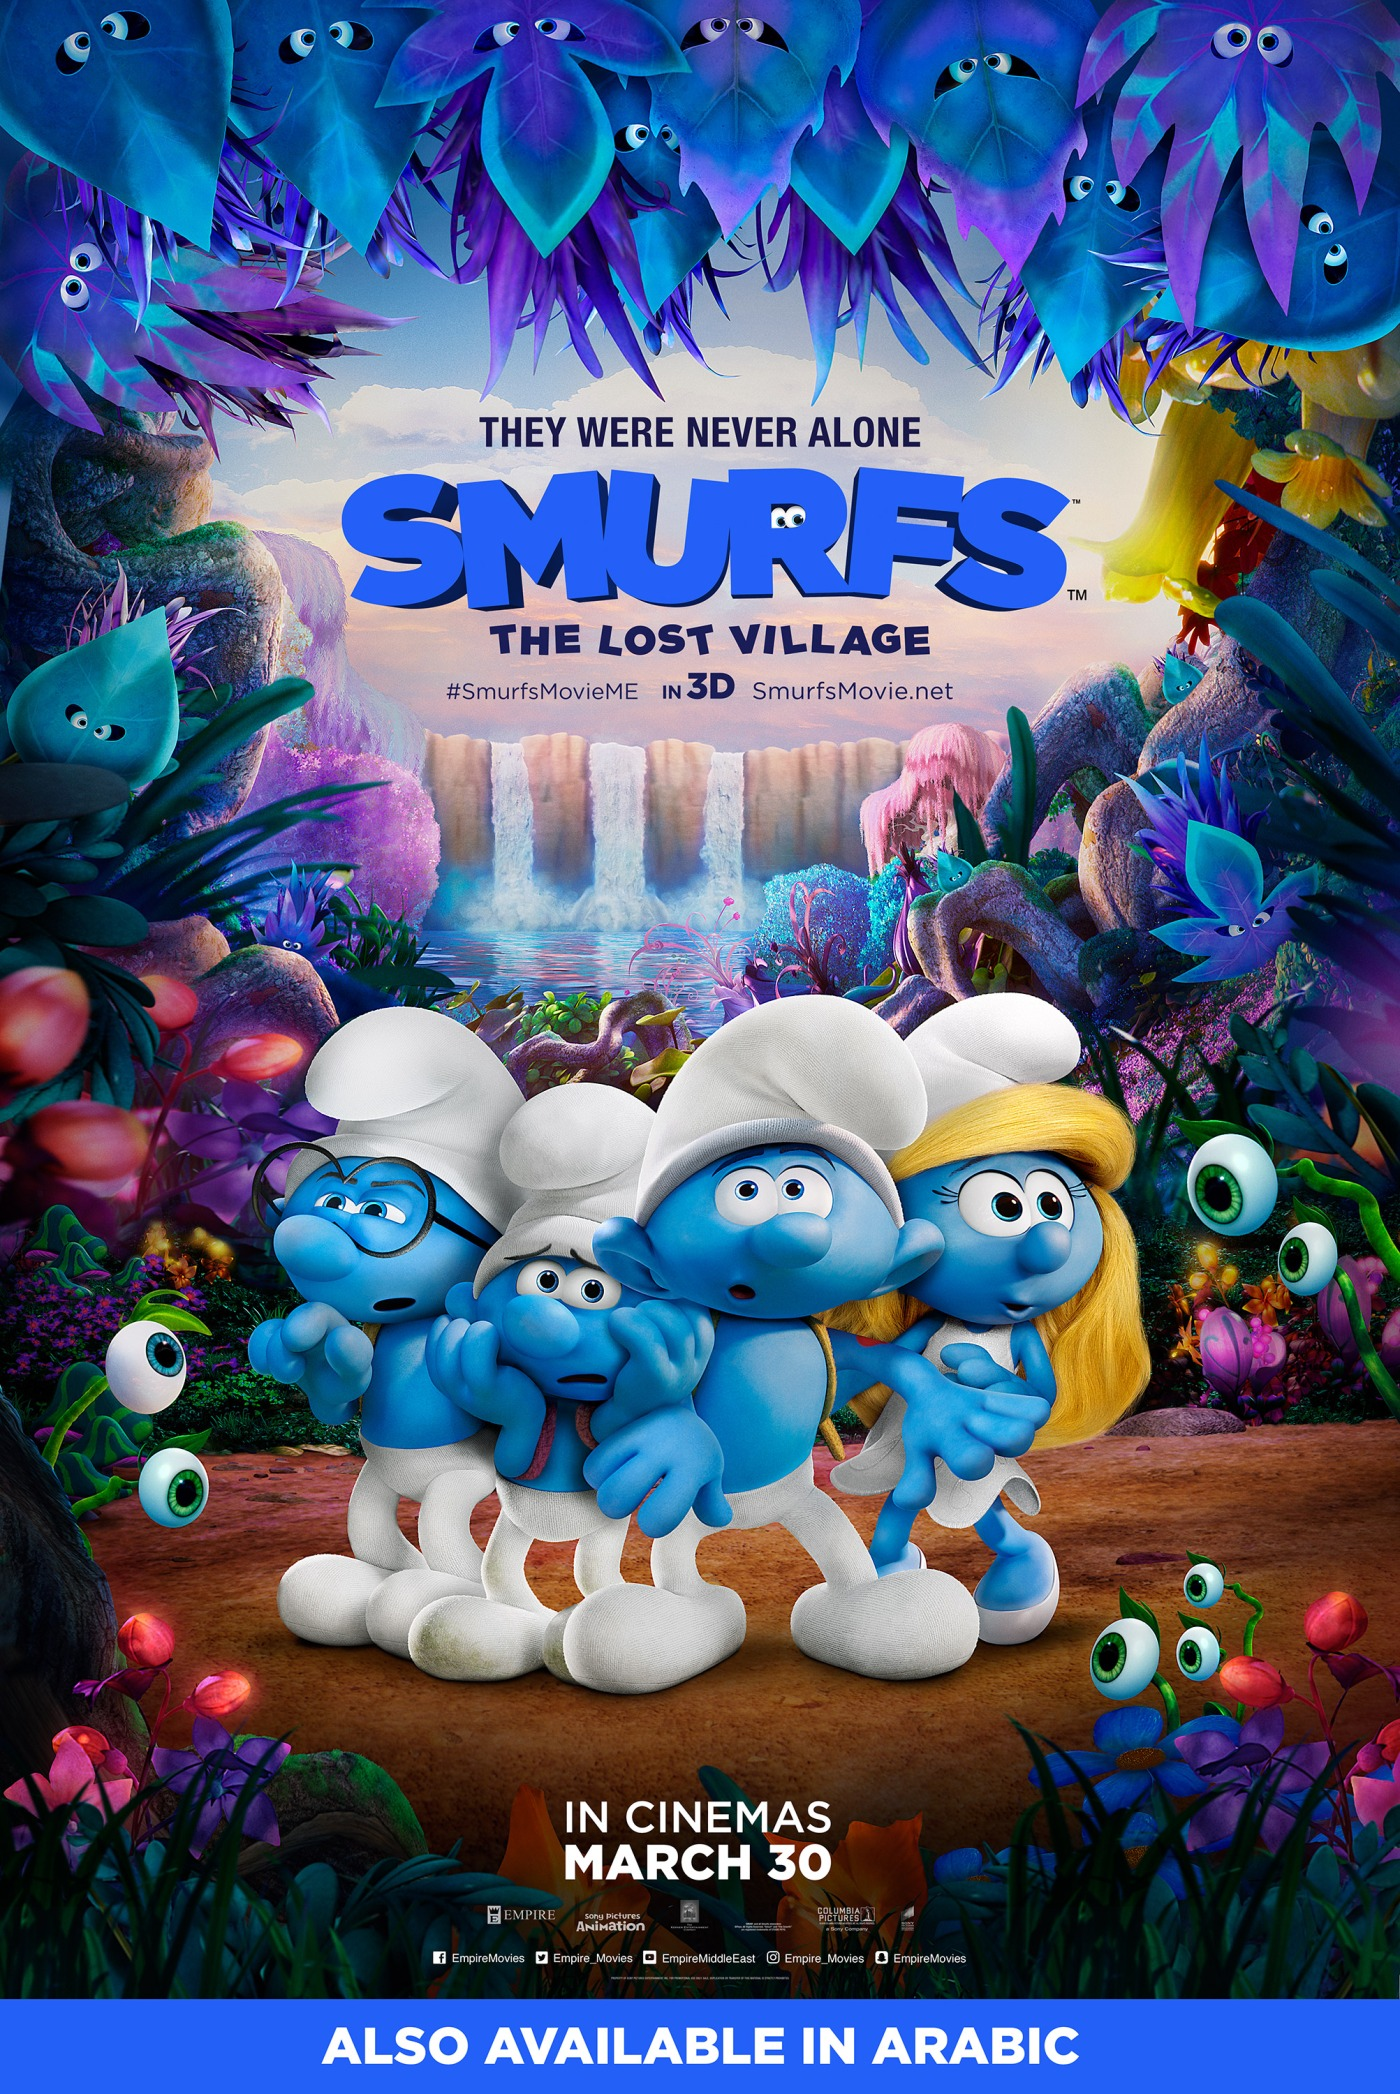 Smurfs - English Movie Poster.jpg